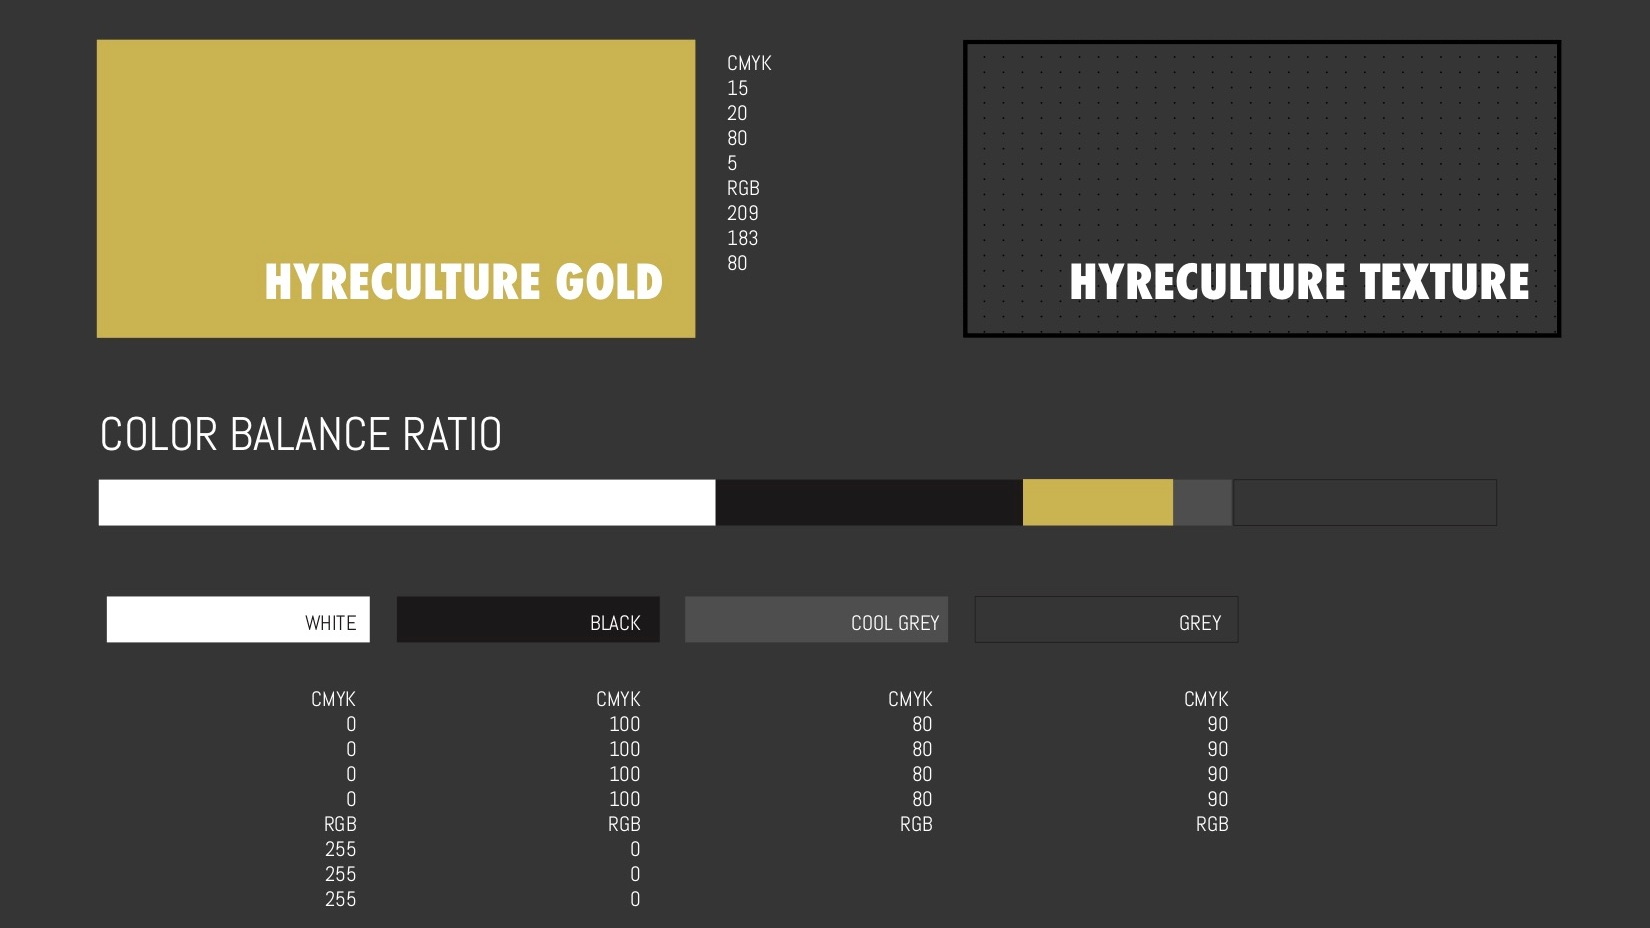 Thinking Color - Unlike any other hiring agency, Hyreculture's color palette was dedicated towards highlighting human in a concrete jungle. With mainly a muted color palette like a city, the gold represent the human element in all of us, the little piece that makes us gold.